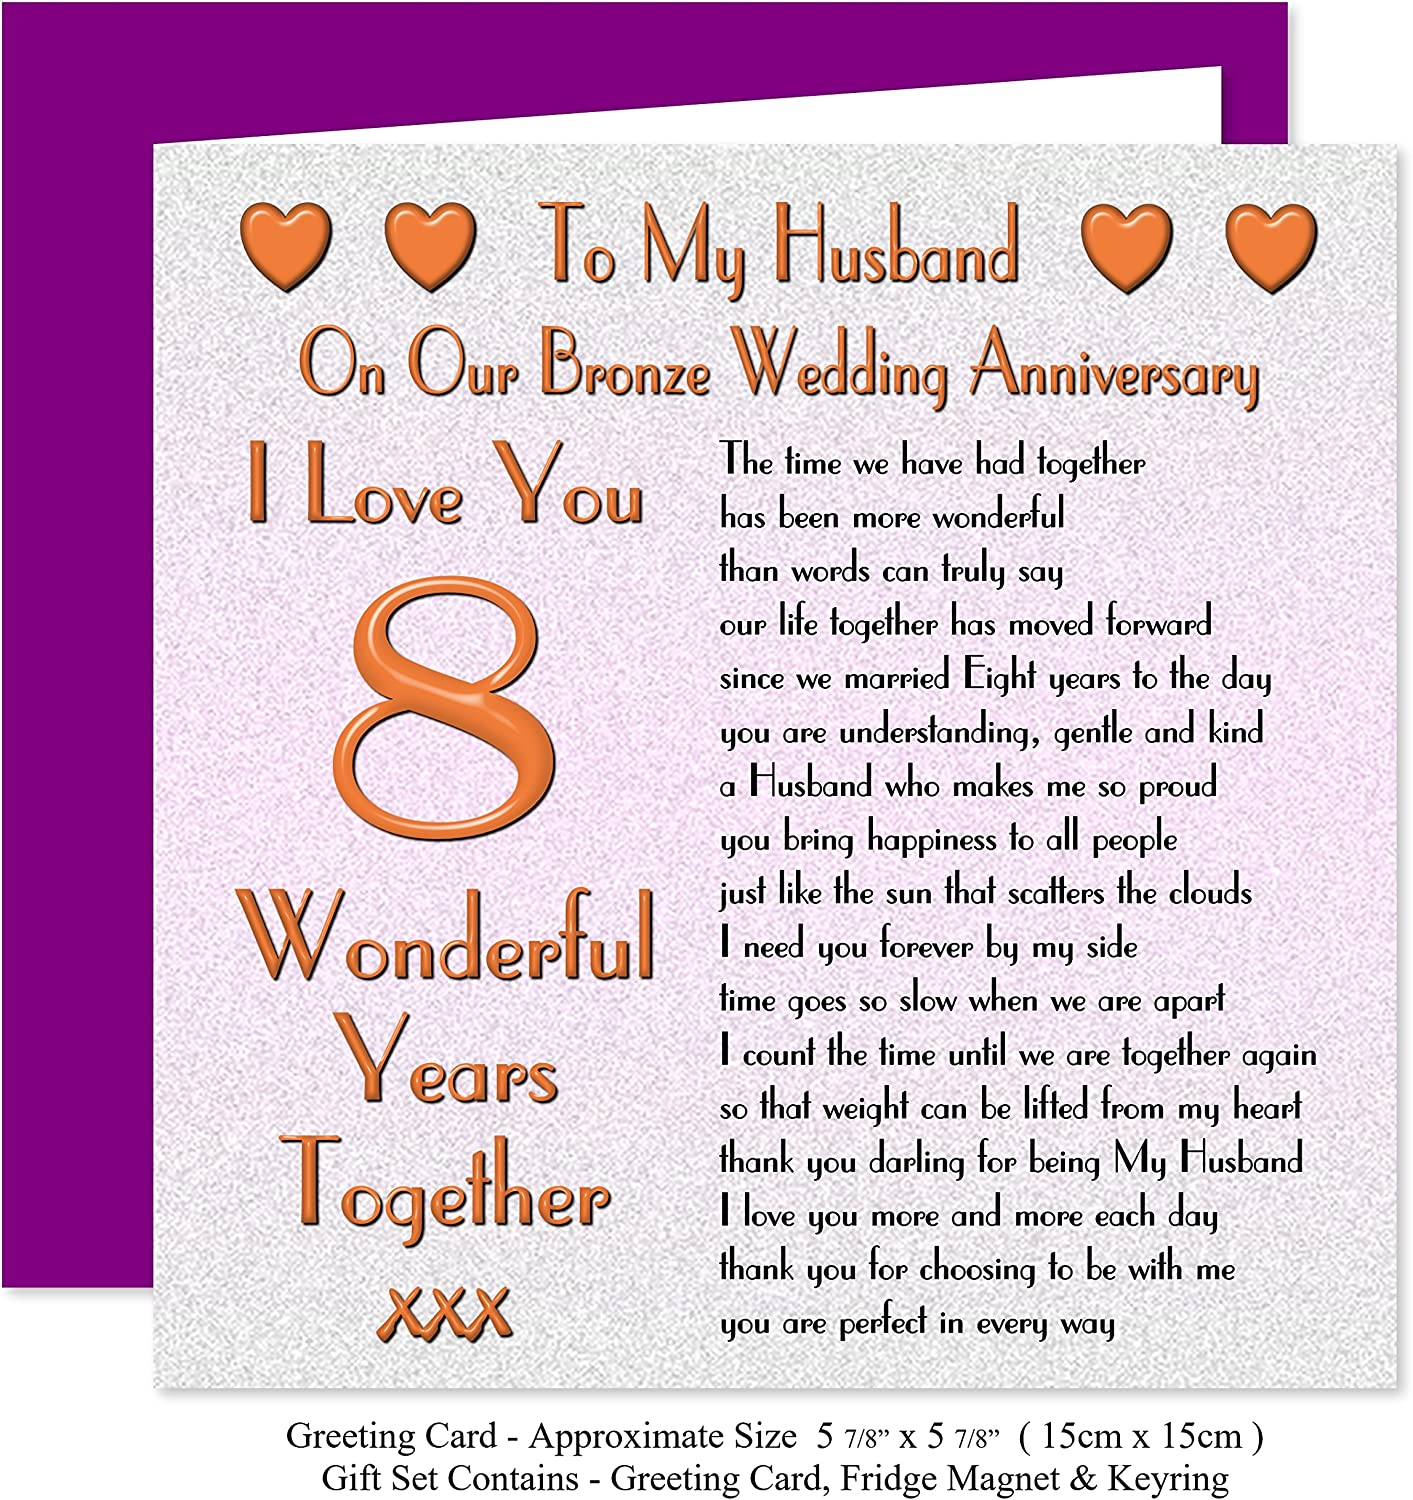 My Husband 8th Wedding Anniversary Gift Set Card Keyring Fridge Magnet Present On Our Bronze Anniversary 8 Years Sentimental Verse I Love You Amazon Co Uk Office Products